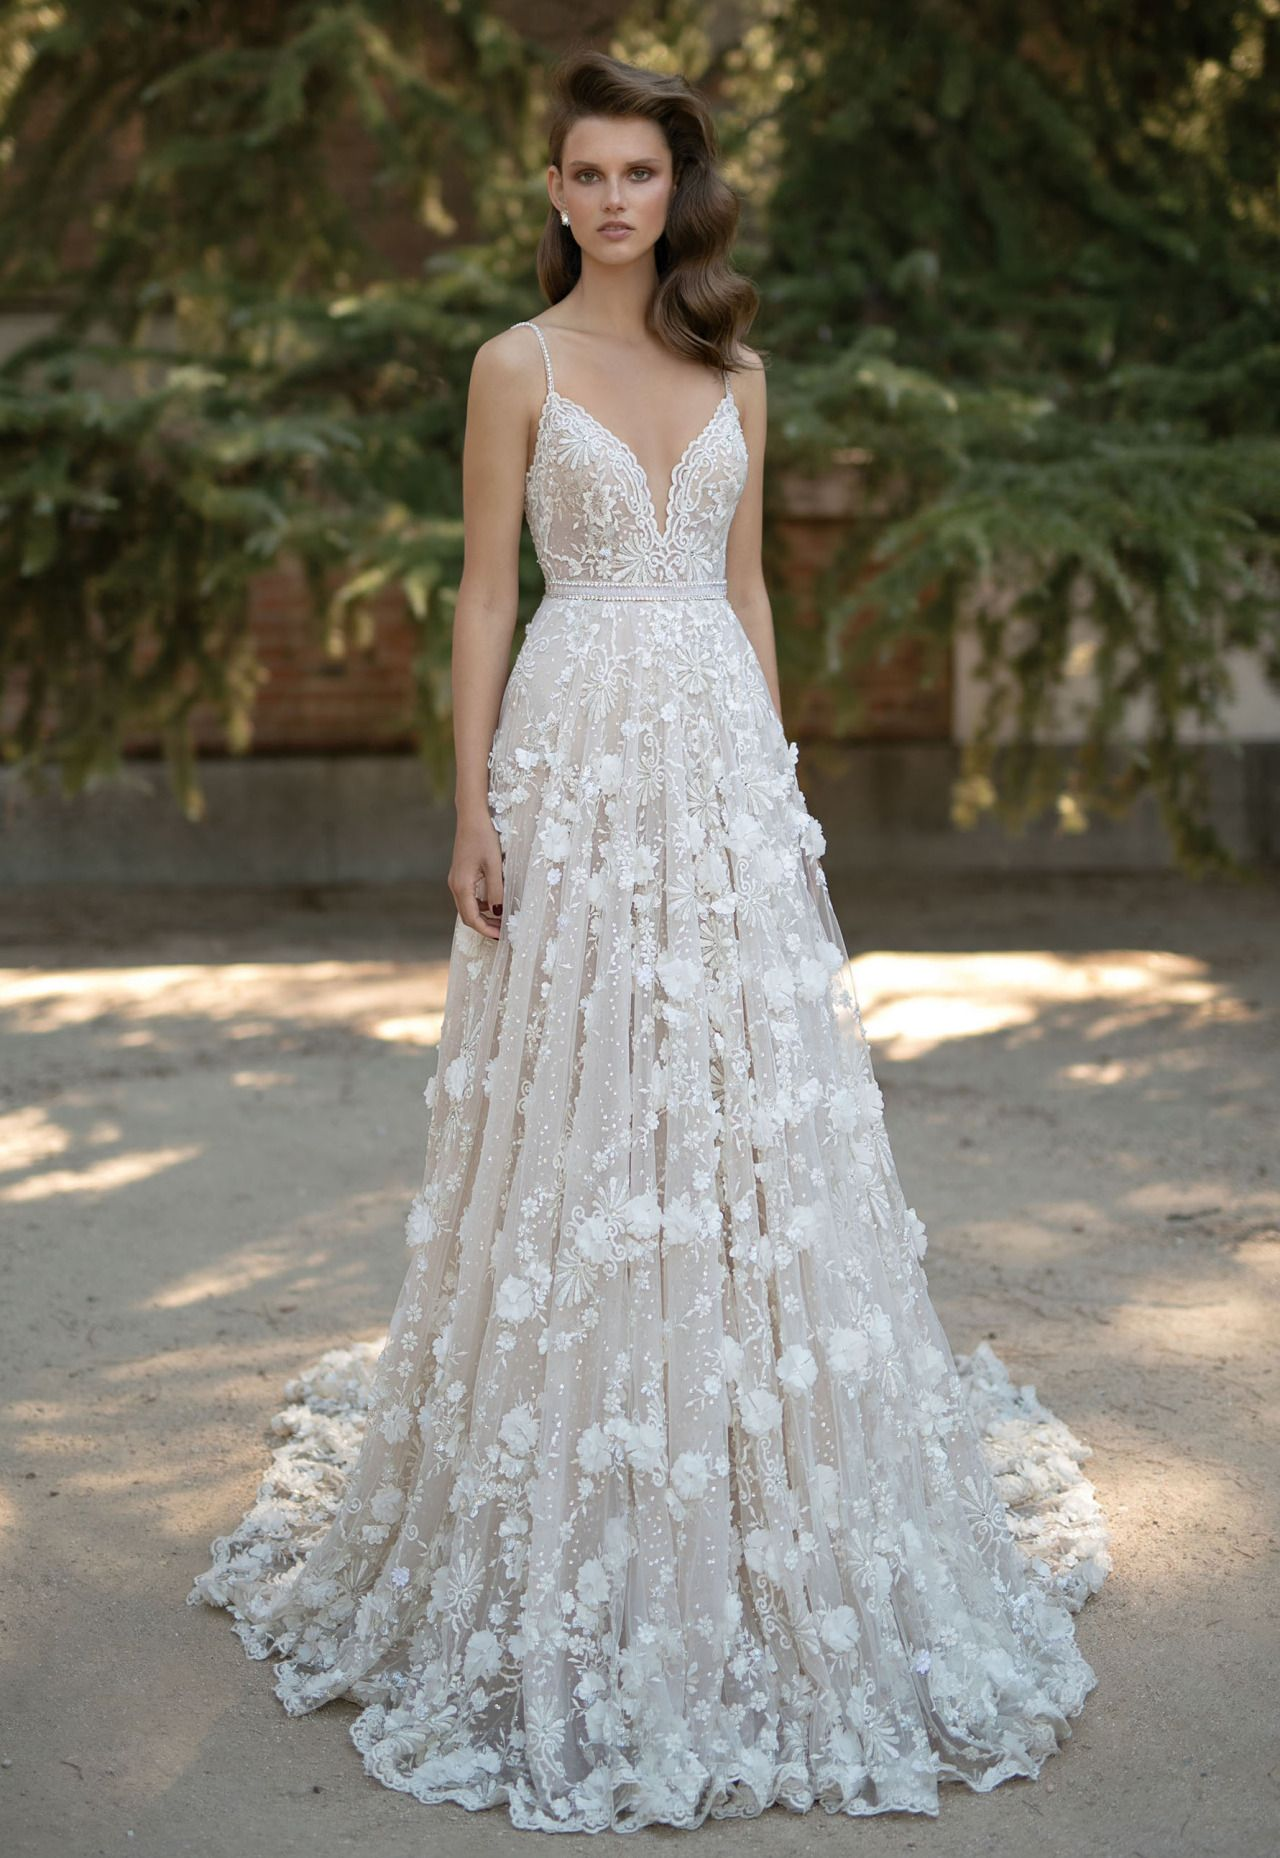 bridal gowns for wedding tumblr women s evening dresses